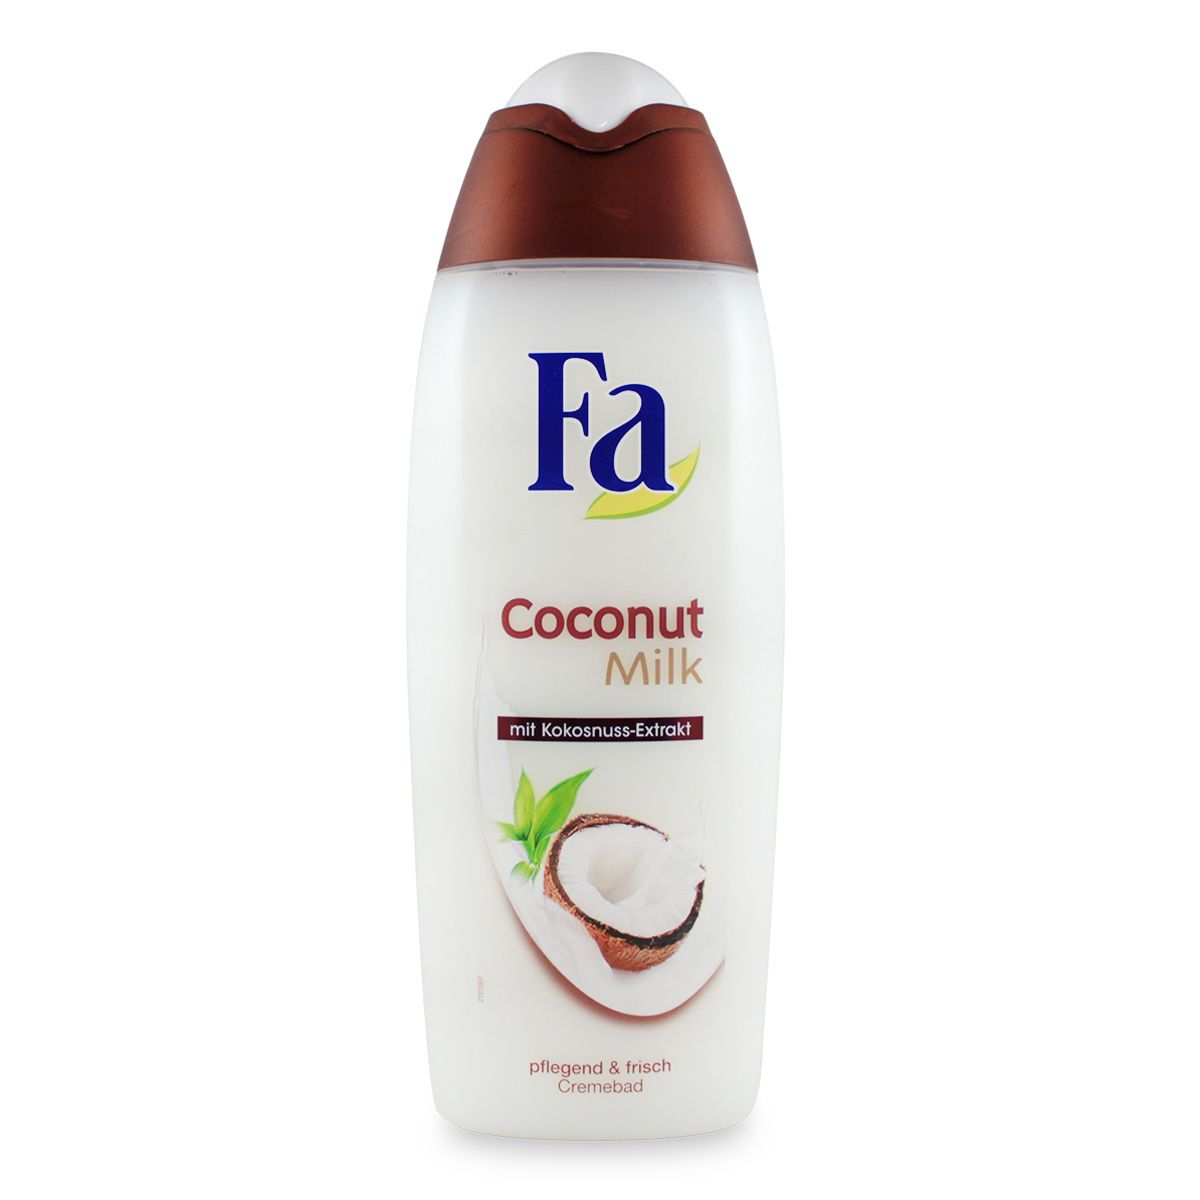 Fa sprchový gel cocnut milk 250ml